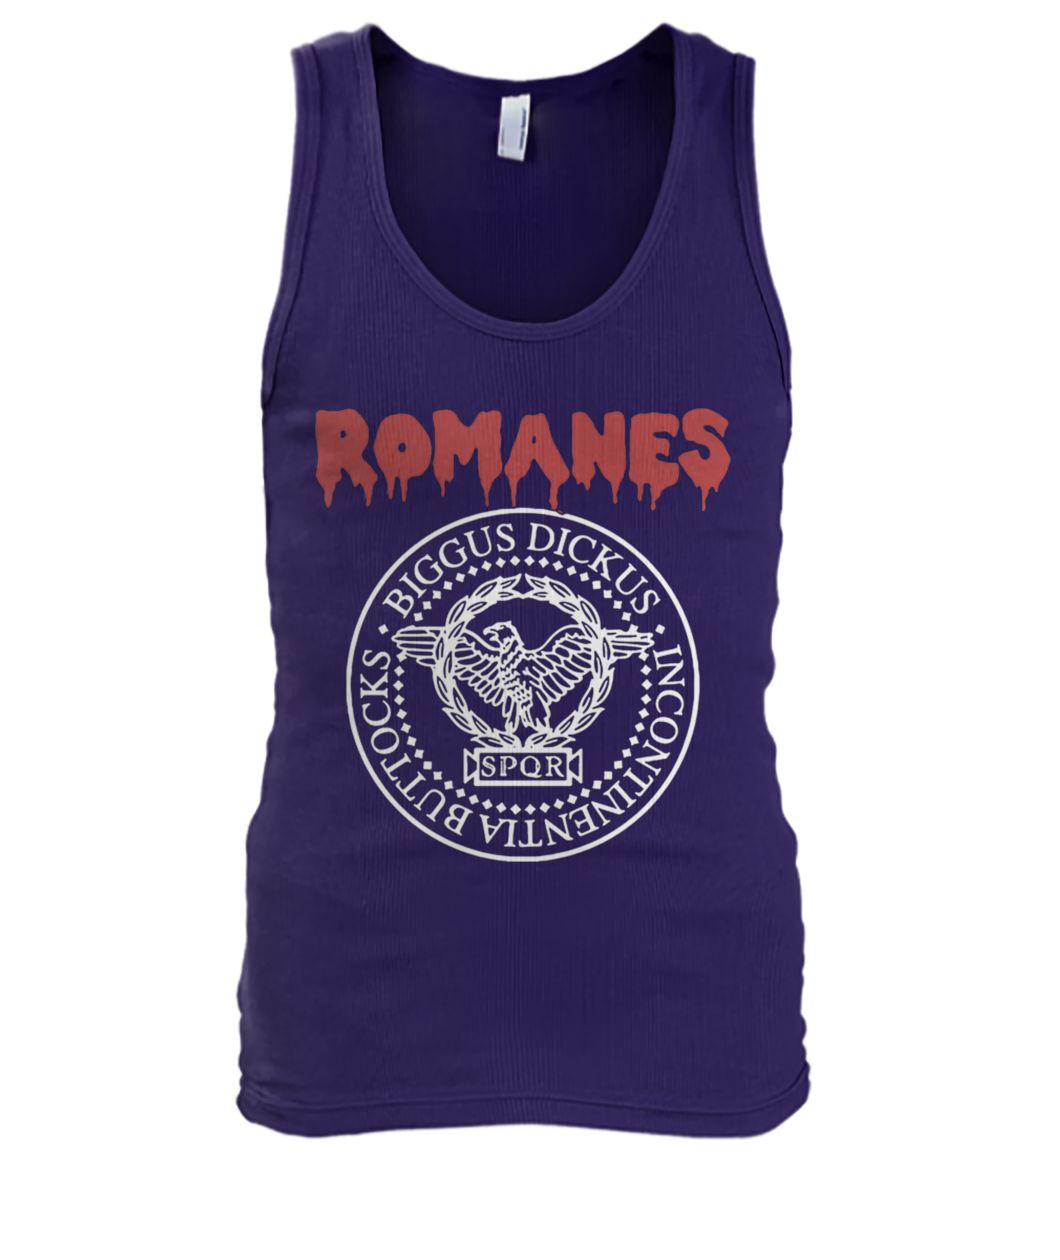 Romanes biggus dickus incontinentia buttocks SPQR men's tank top